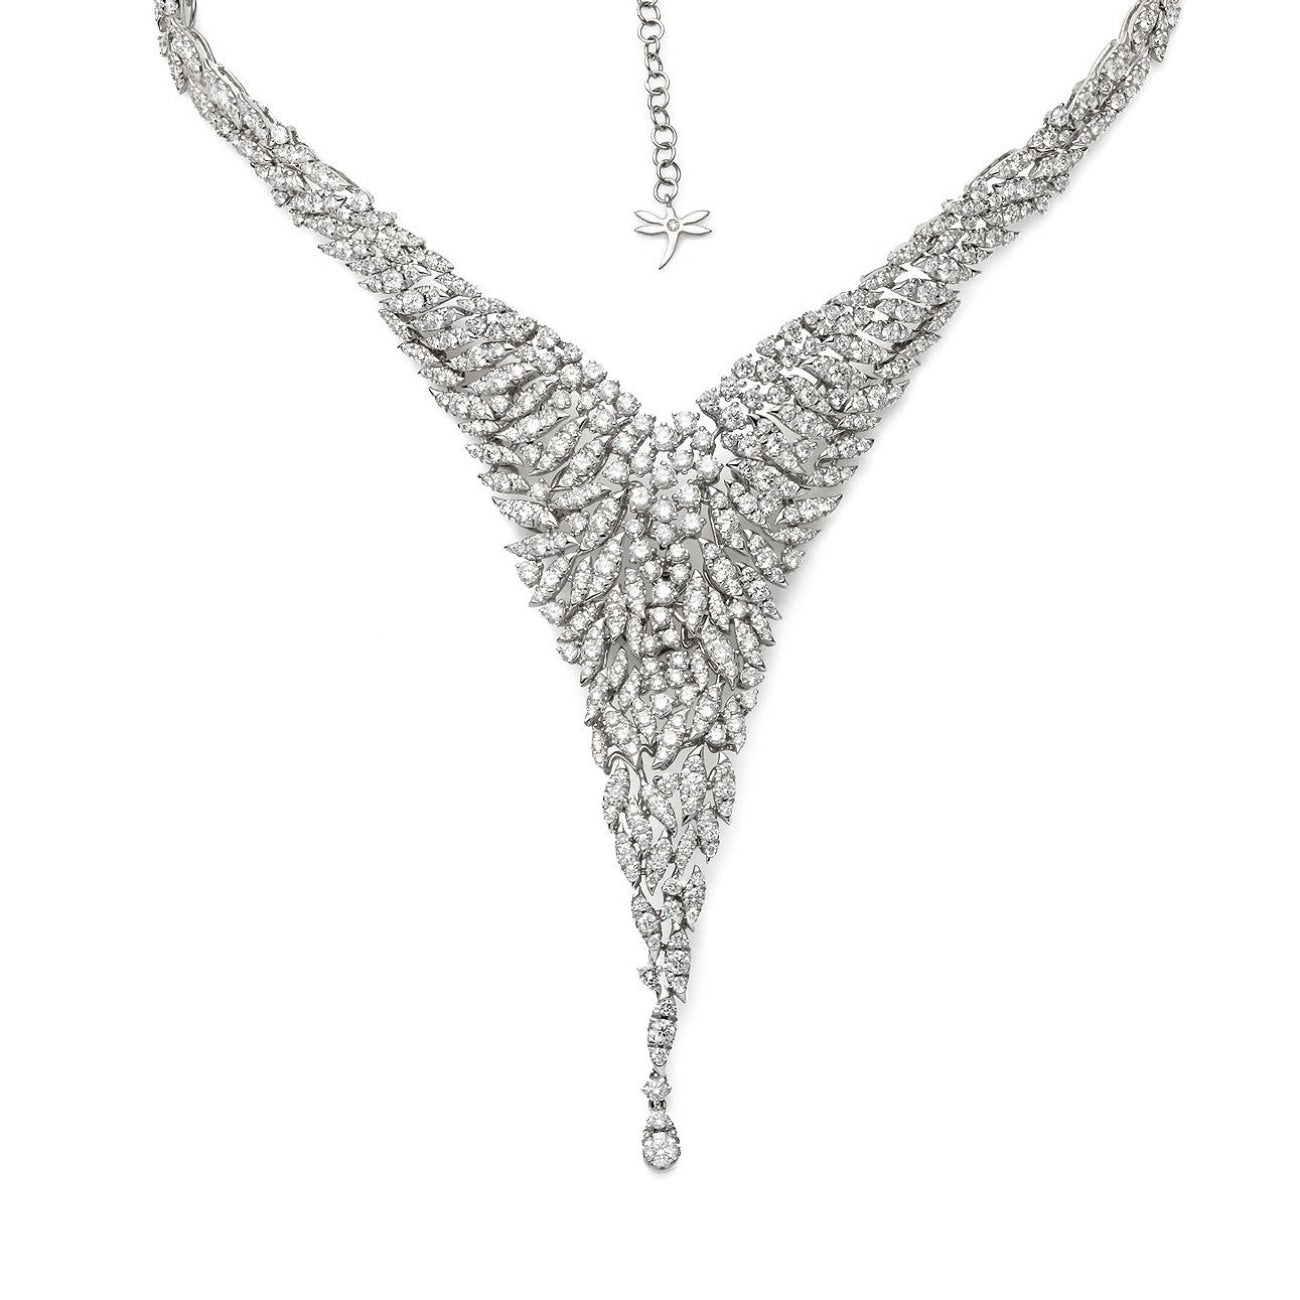 Casato Jewelry - 18kt white gold necklace with diamonds | Manfredi Jewels